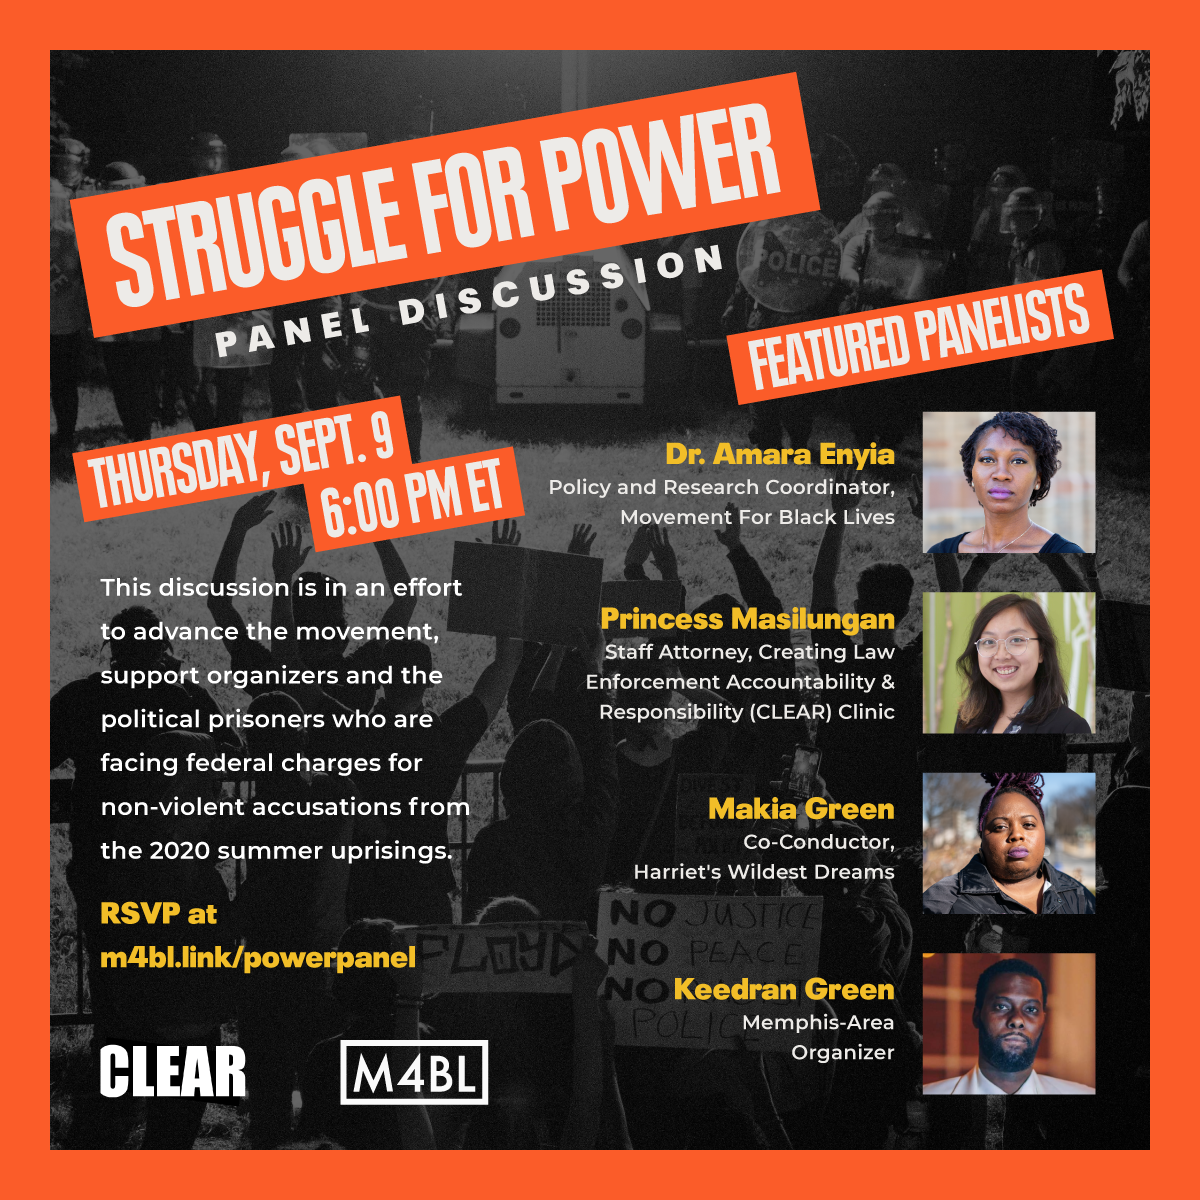 Struggle for Power Panel Discussion